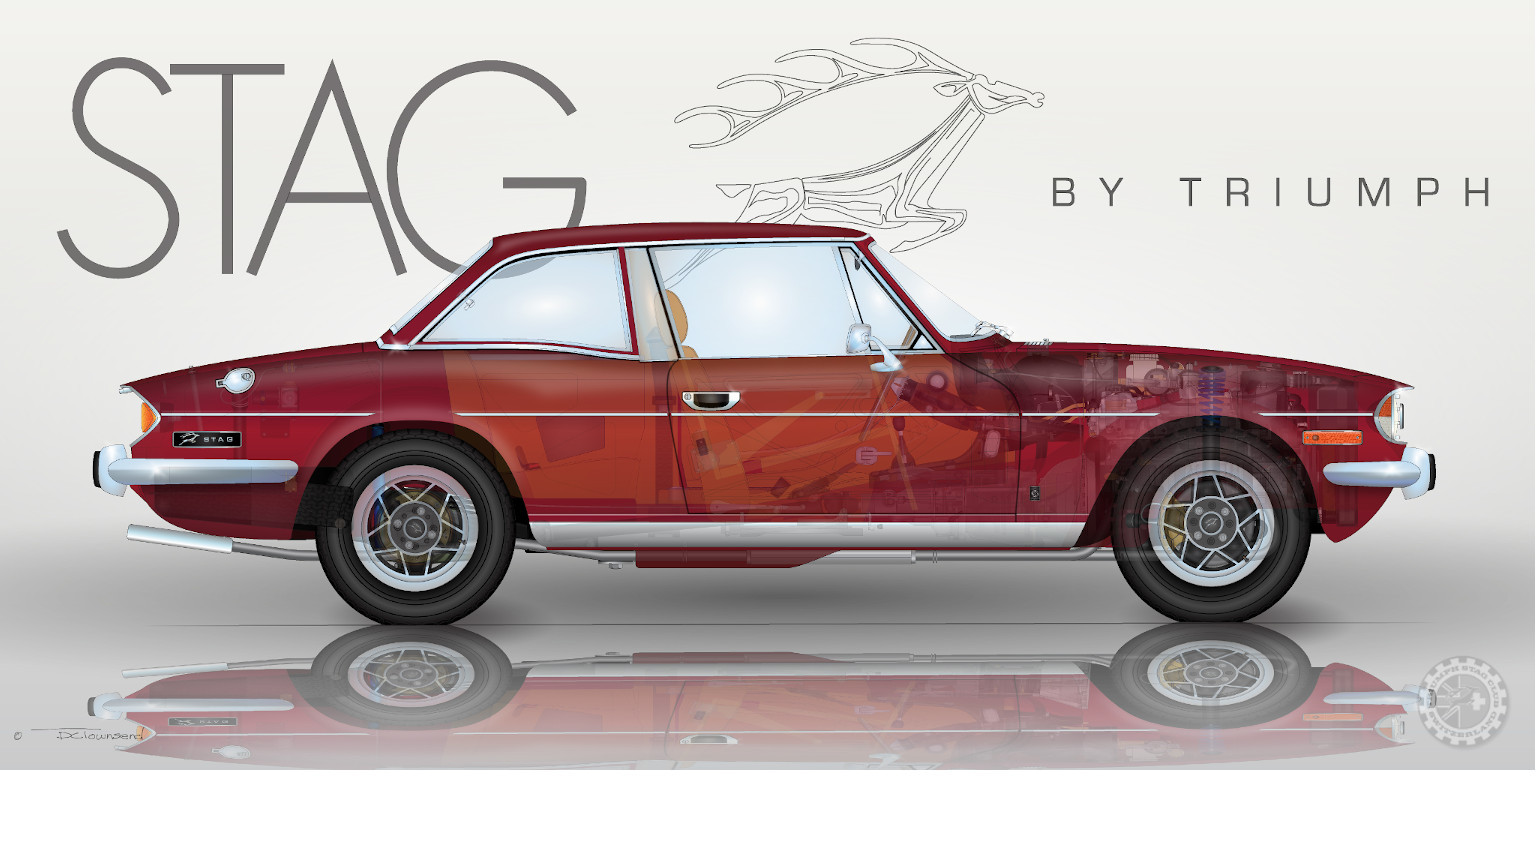 Stag by Triumph